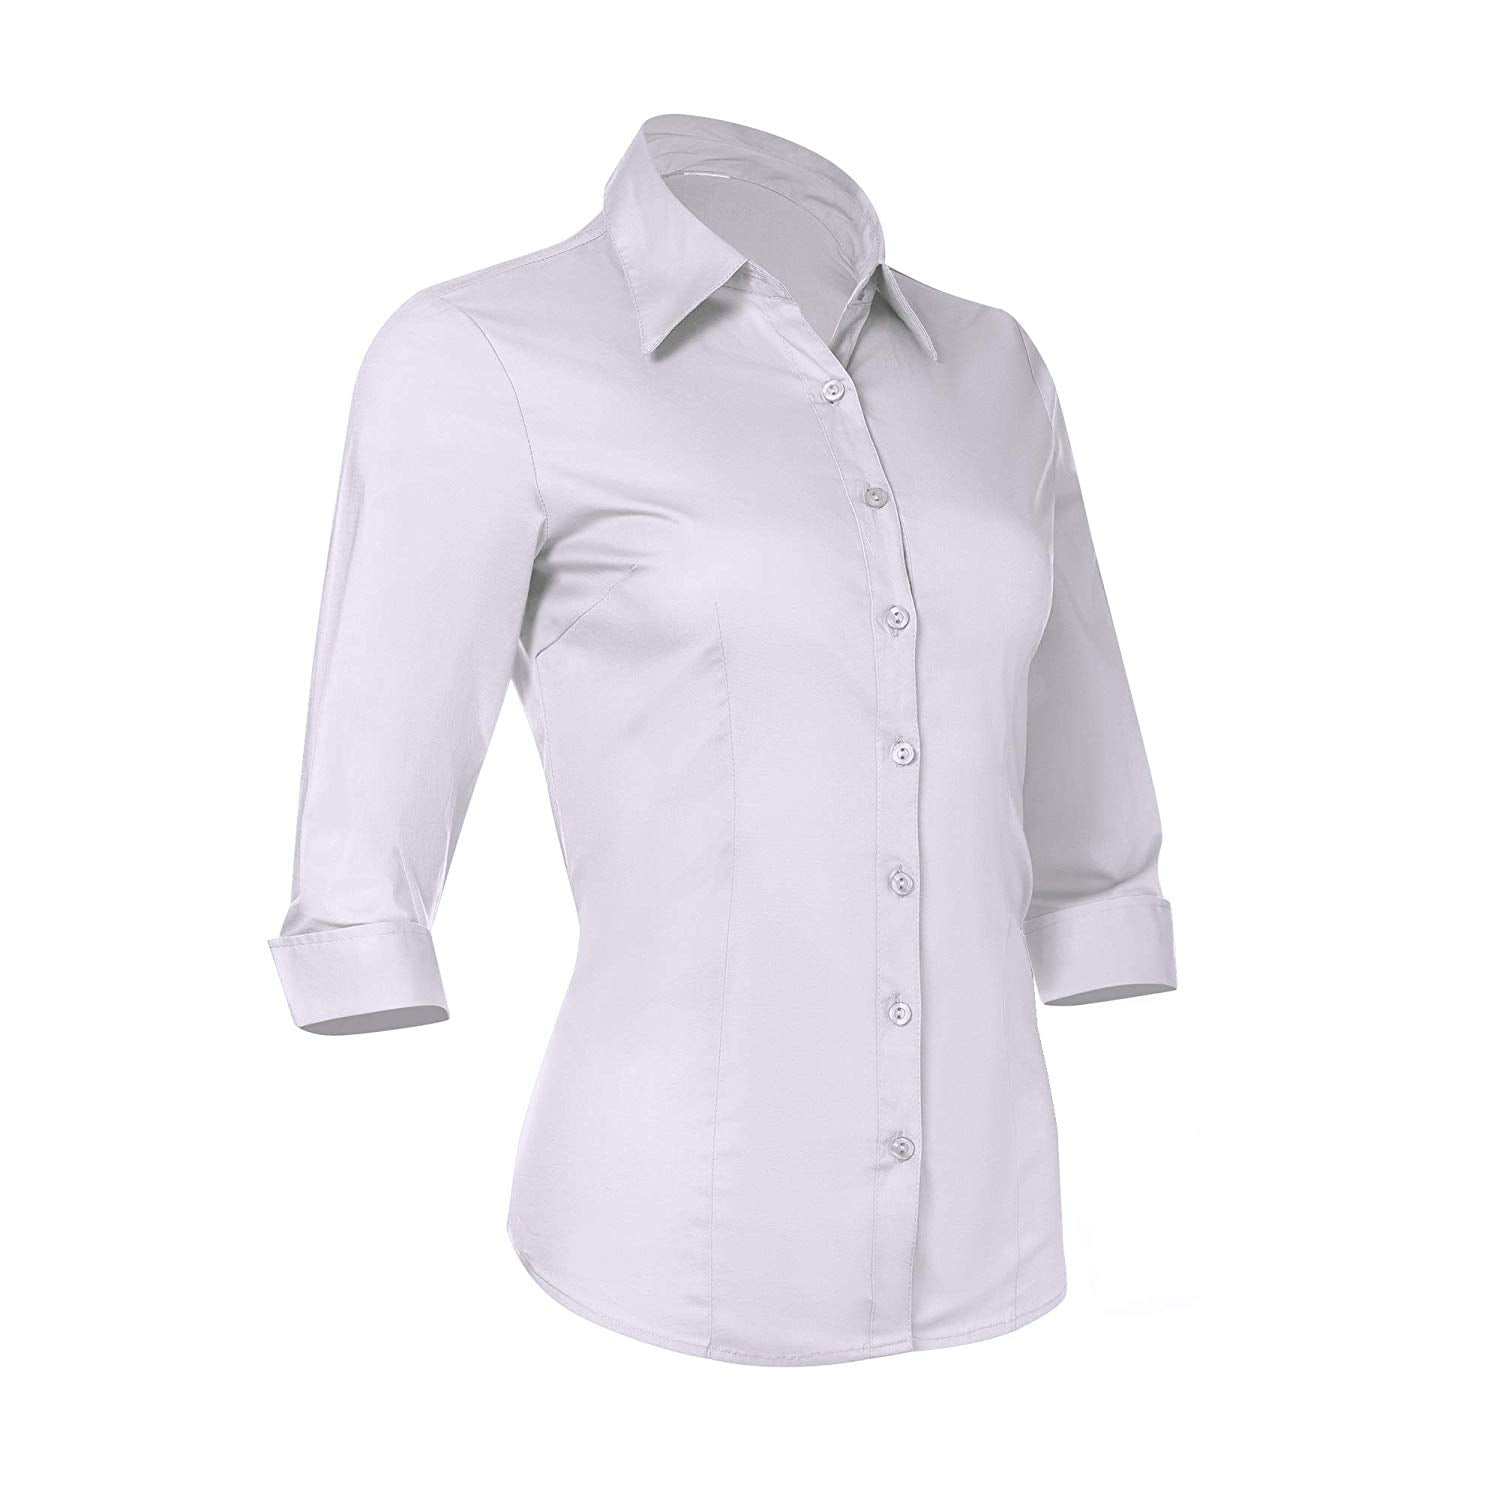 c05446f008 Pier 17 - Button Down Shirts For Women By Pier 17 - Tailored